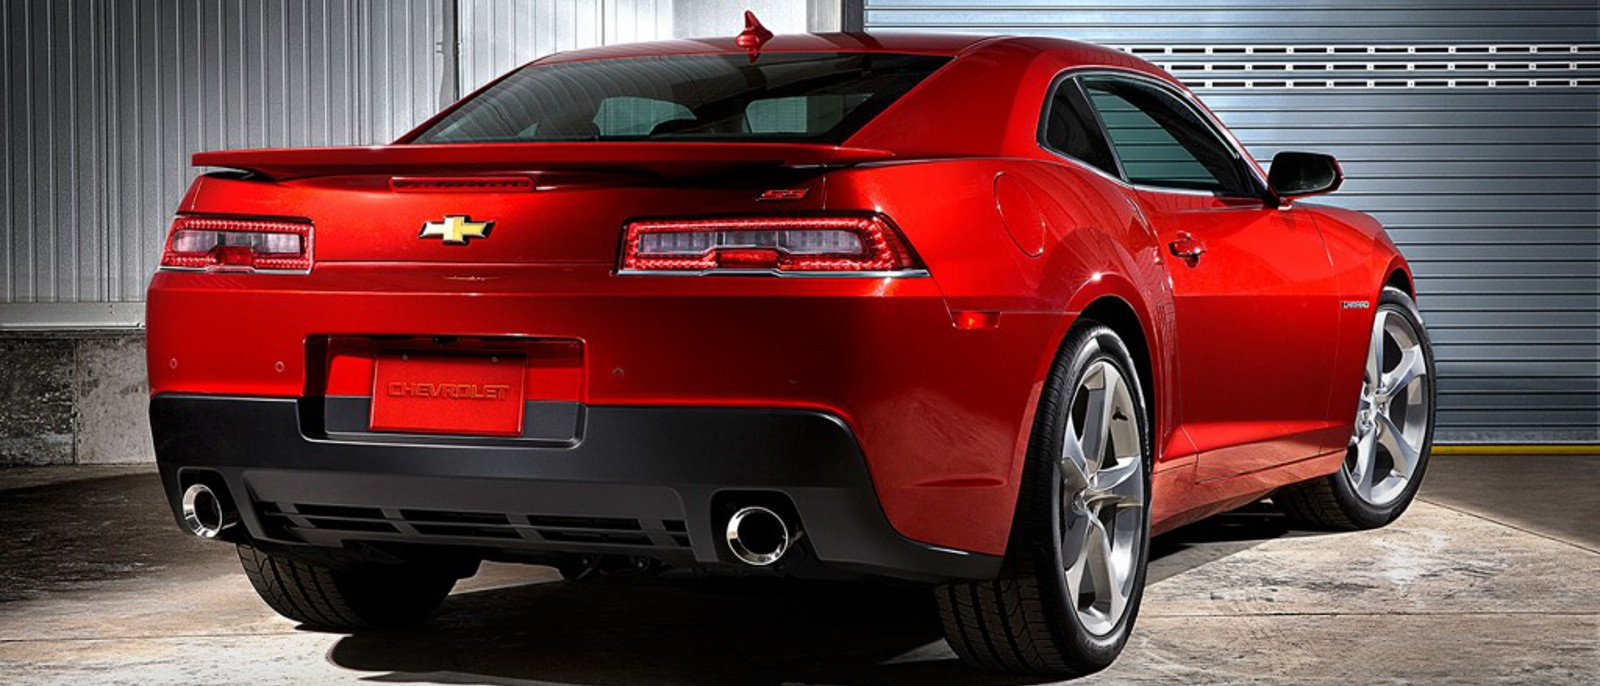 2016 Chevy Camaro rear view